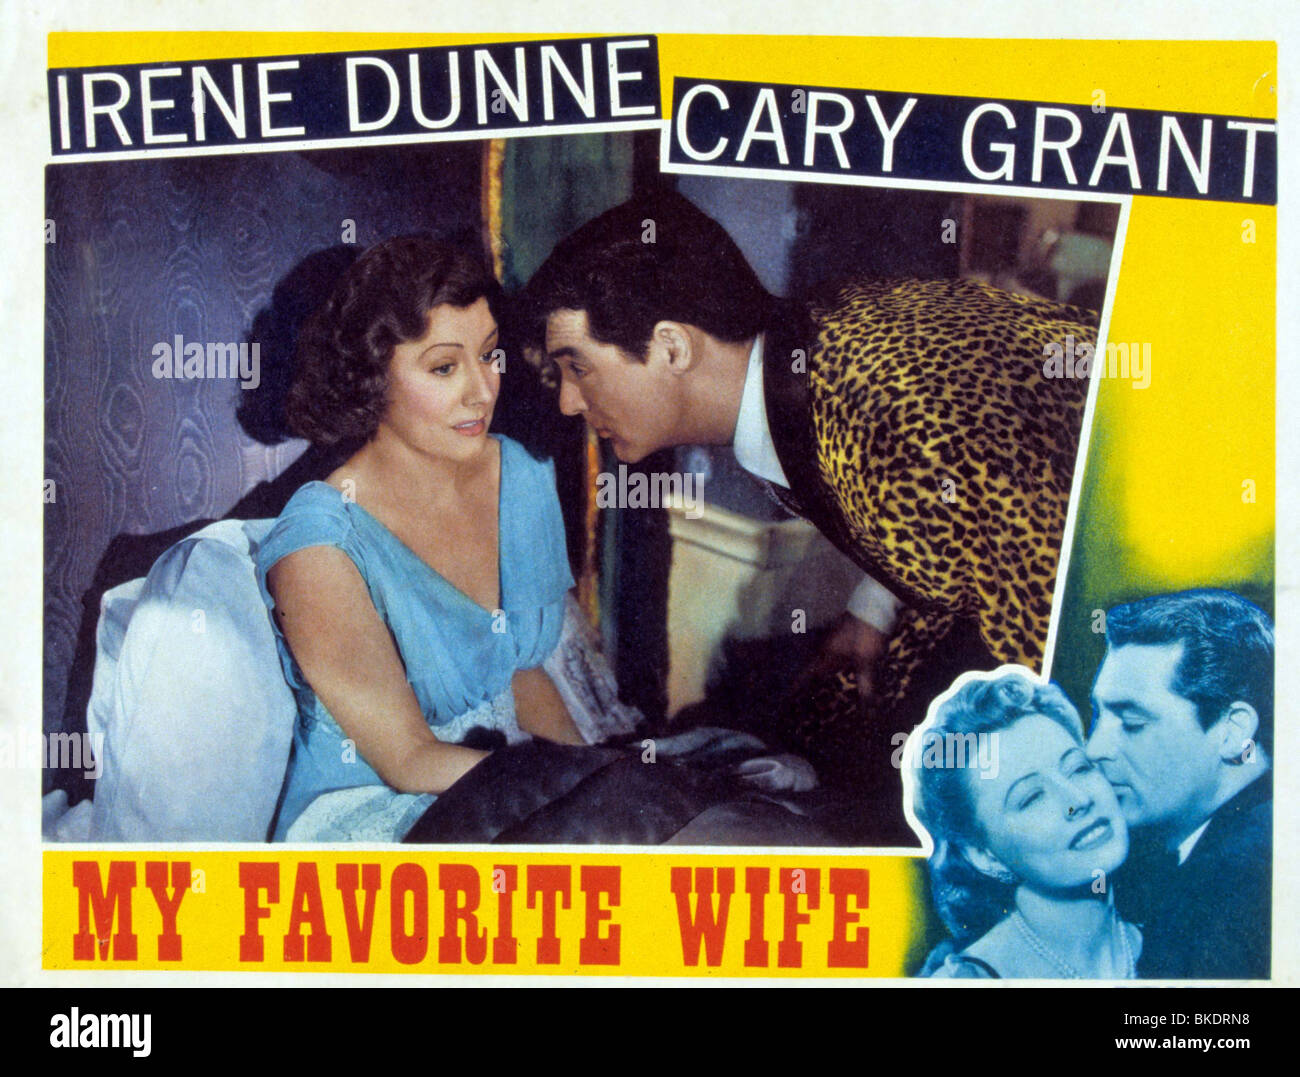 MY FAVORITE WIFE (1940) MY FAVOURITE WIFE (ALT) POSTER MFVW 003 - Stock Image